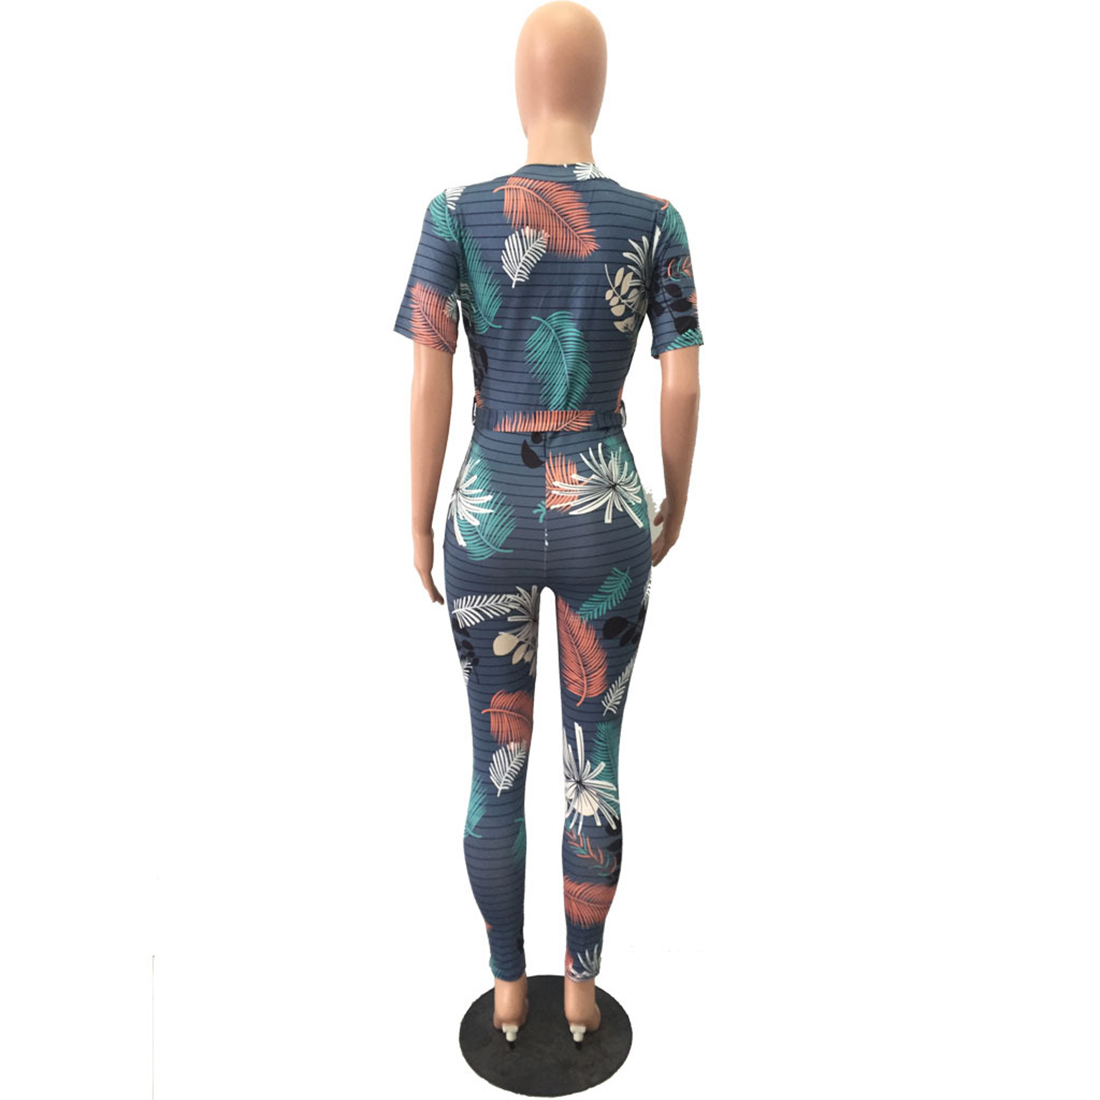 a42727e0a6a YJSFG HOUSE Women V-neck Floral Print Jumpsuits Rompers Sexy Elegant Summer  Short Sleeve Overalls One Piece Catsuit Playsuits